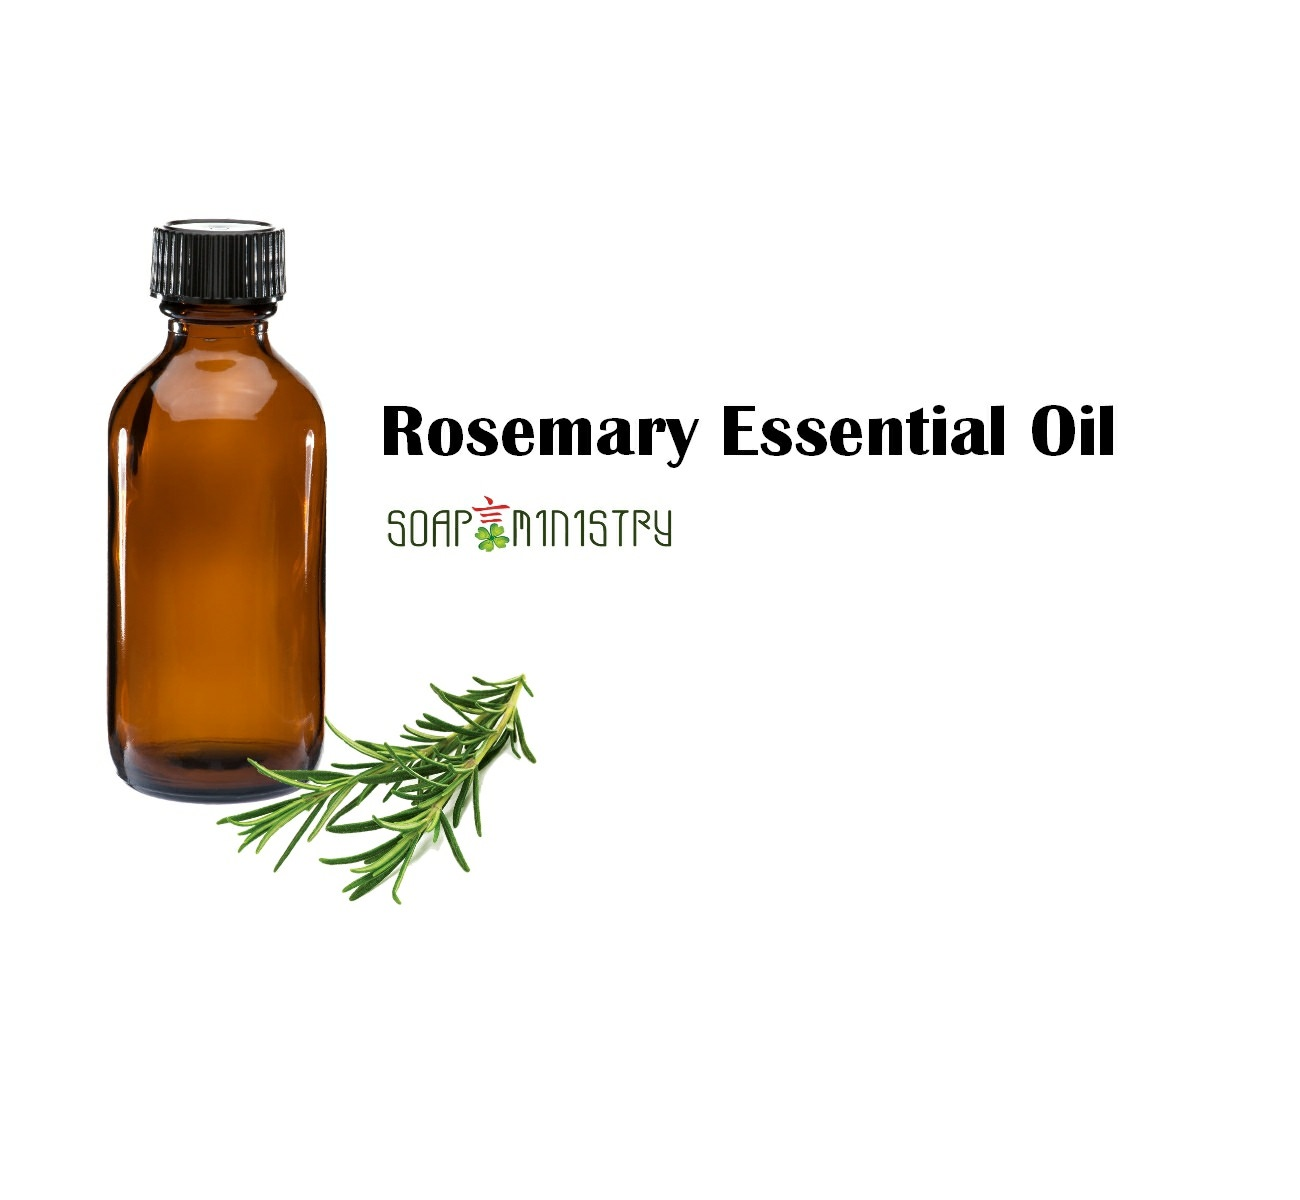 Rosemary Essential Oil 1L